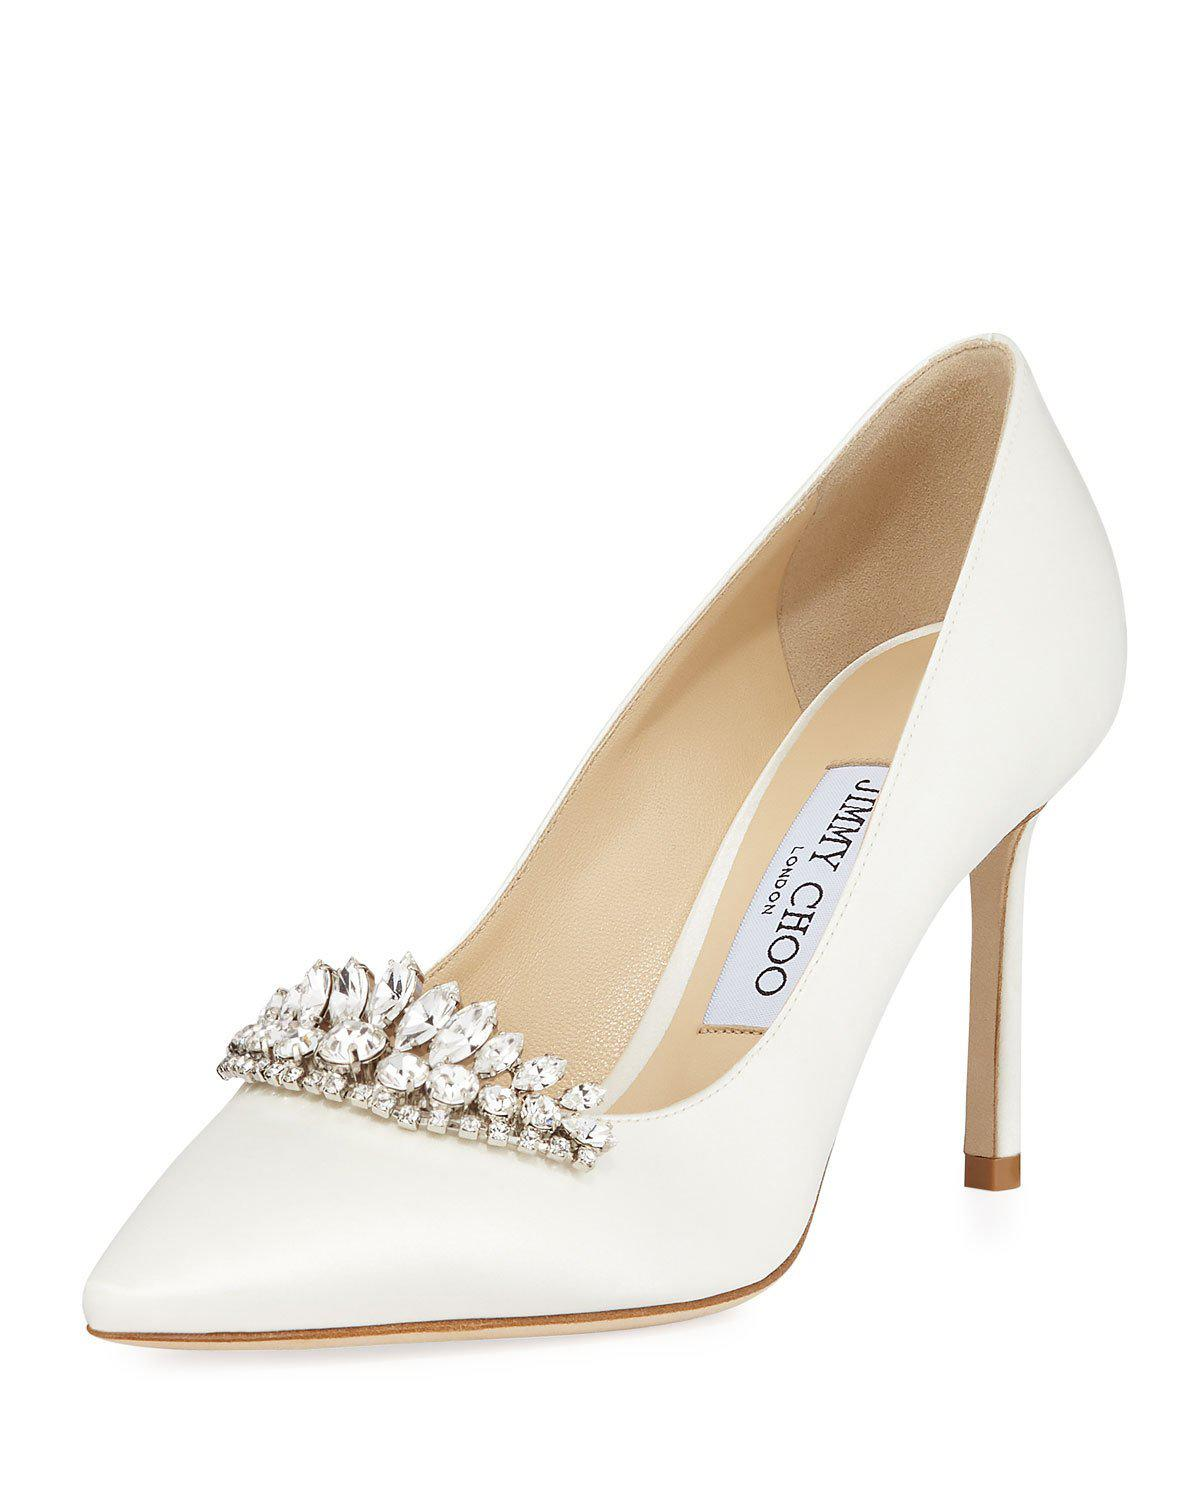 770a64a37641 Jimmy Choo Romy 85 Ivory Satin Pointy Toe Pumps With Crystal Tiara In White